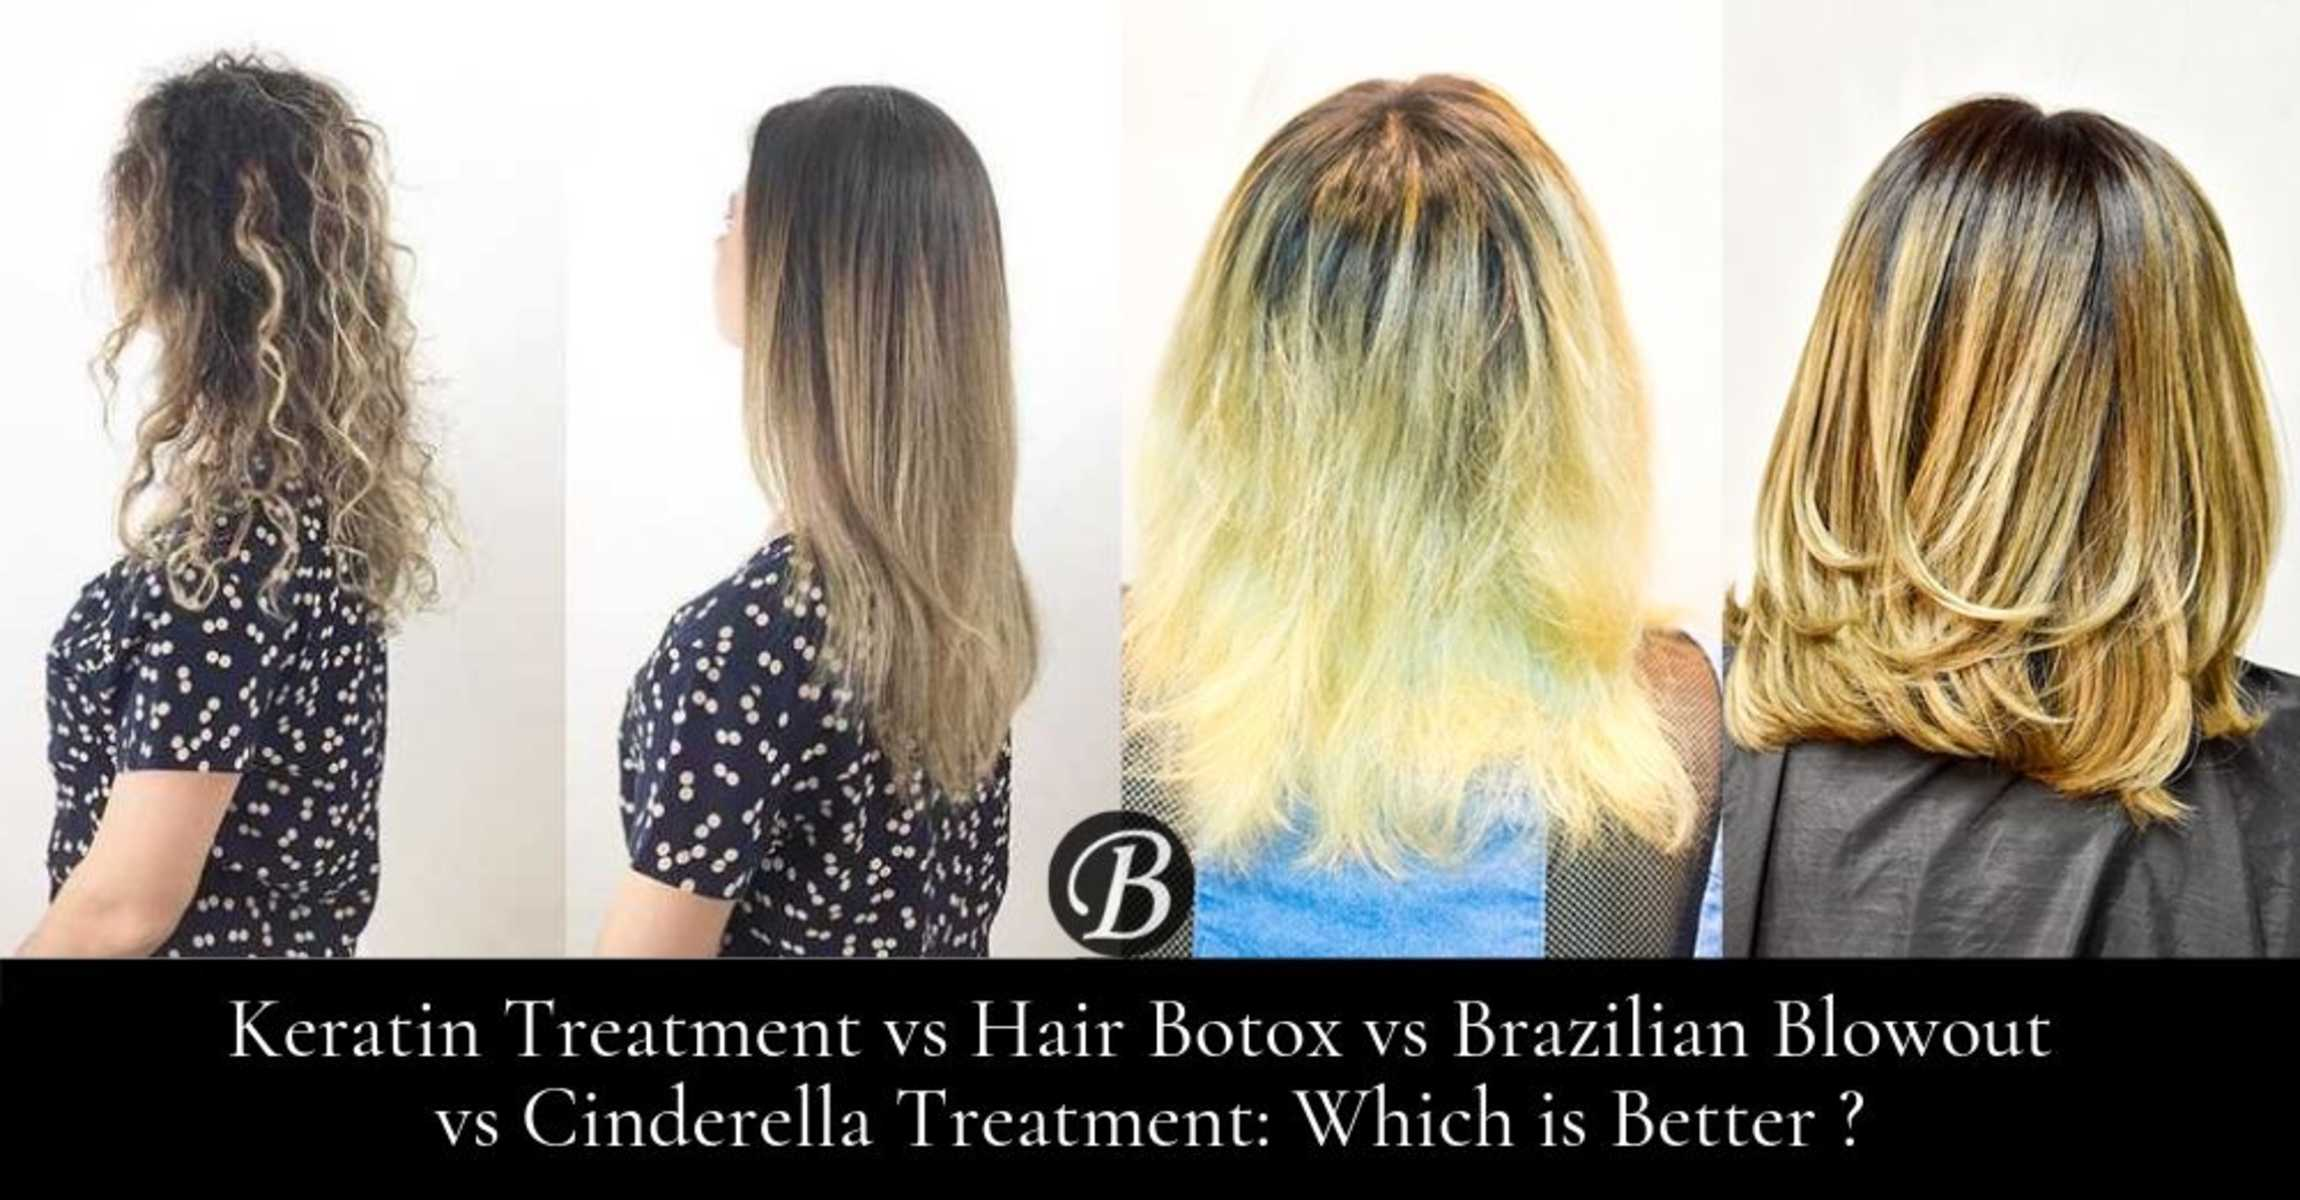 What Are The Differences Among Keratin Treatment Hair Botox Cinderella Treatment Which Is Best For Your